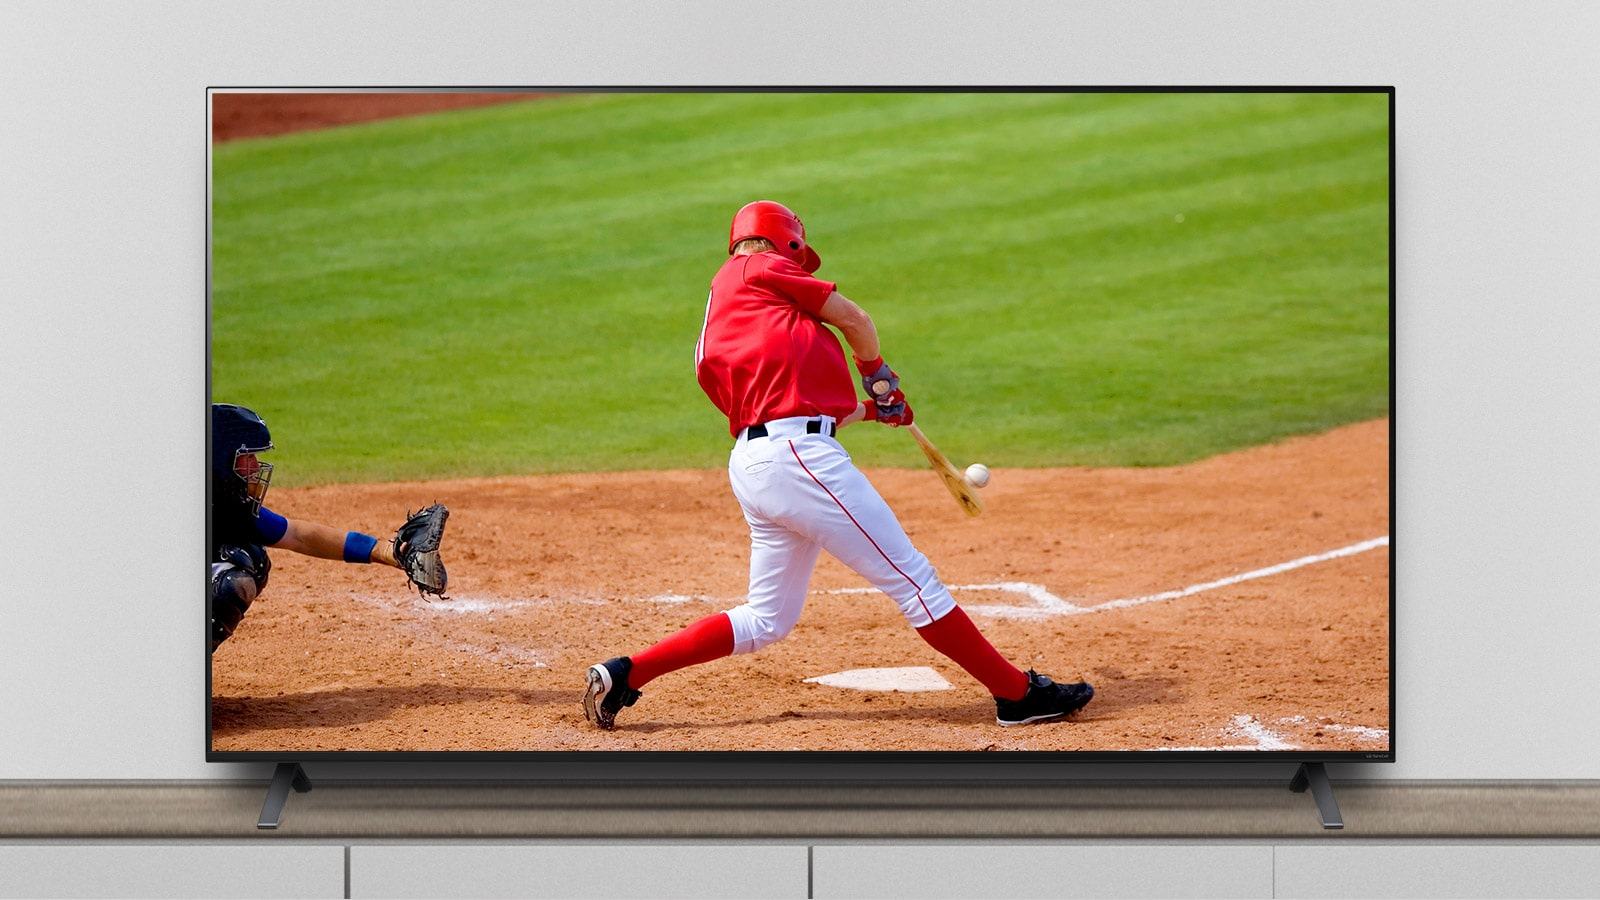 The TV is on the stand, and the screen shows a baseball match.